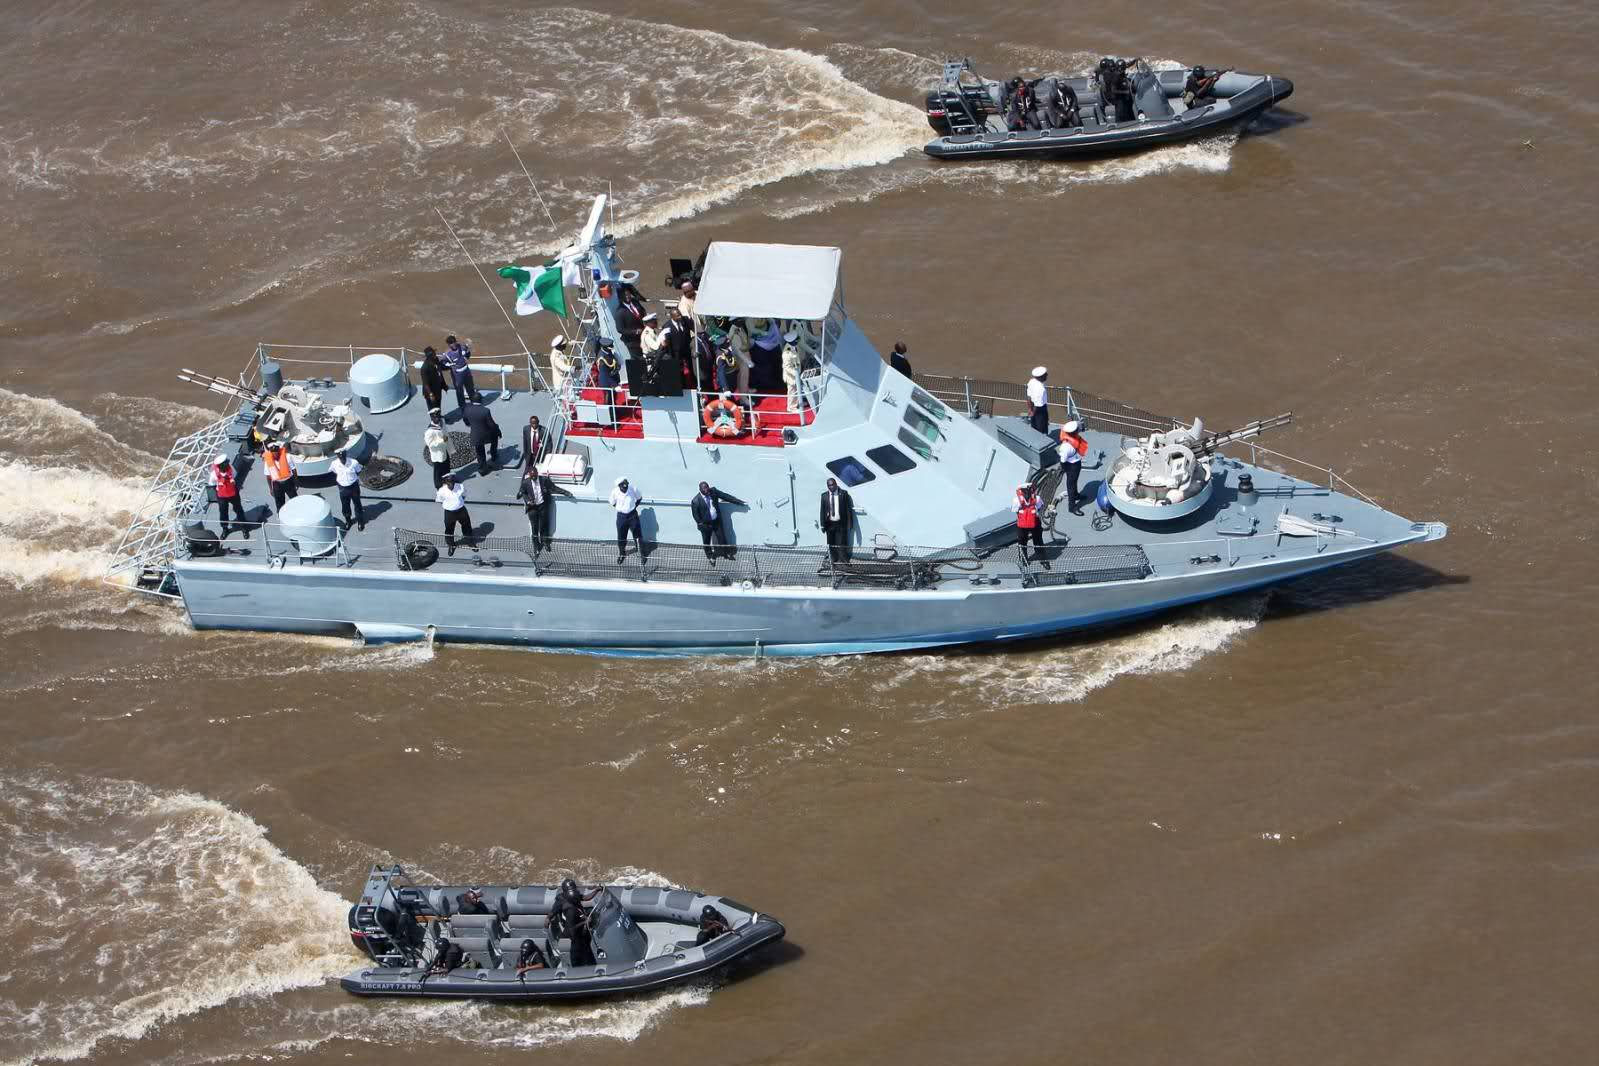 Oil Bunkering: Nigerian Navy hands over 57 Nigerians, 7 Sri-Lankans, 2 Ghanaians to EFCC